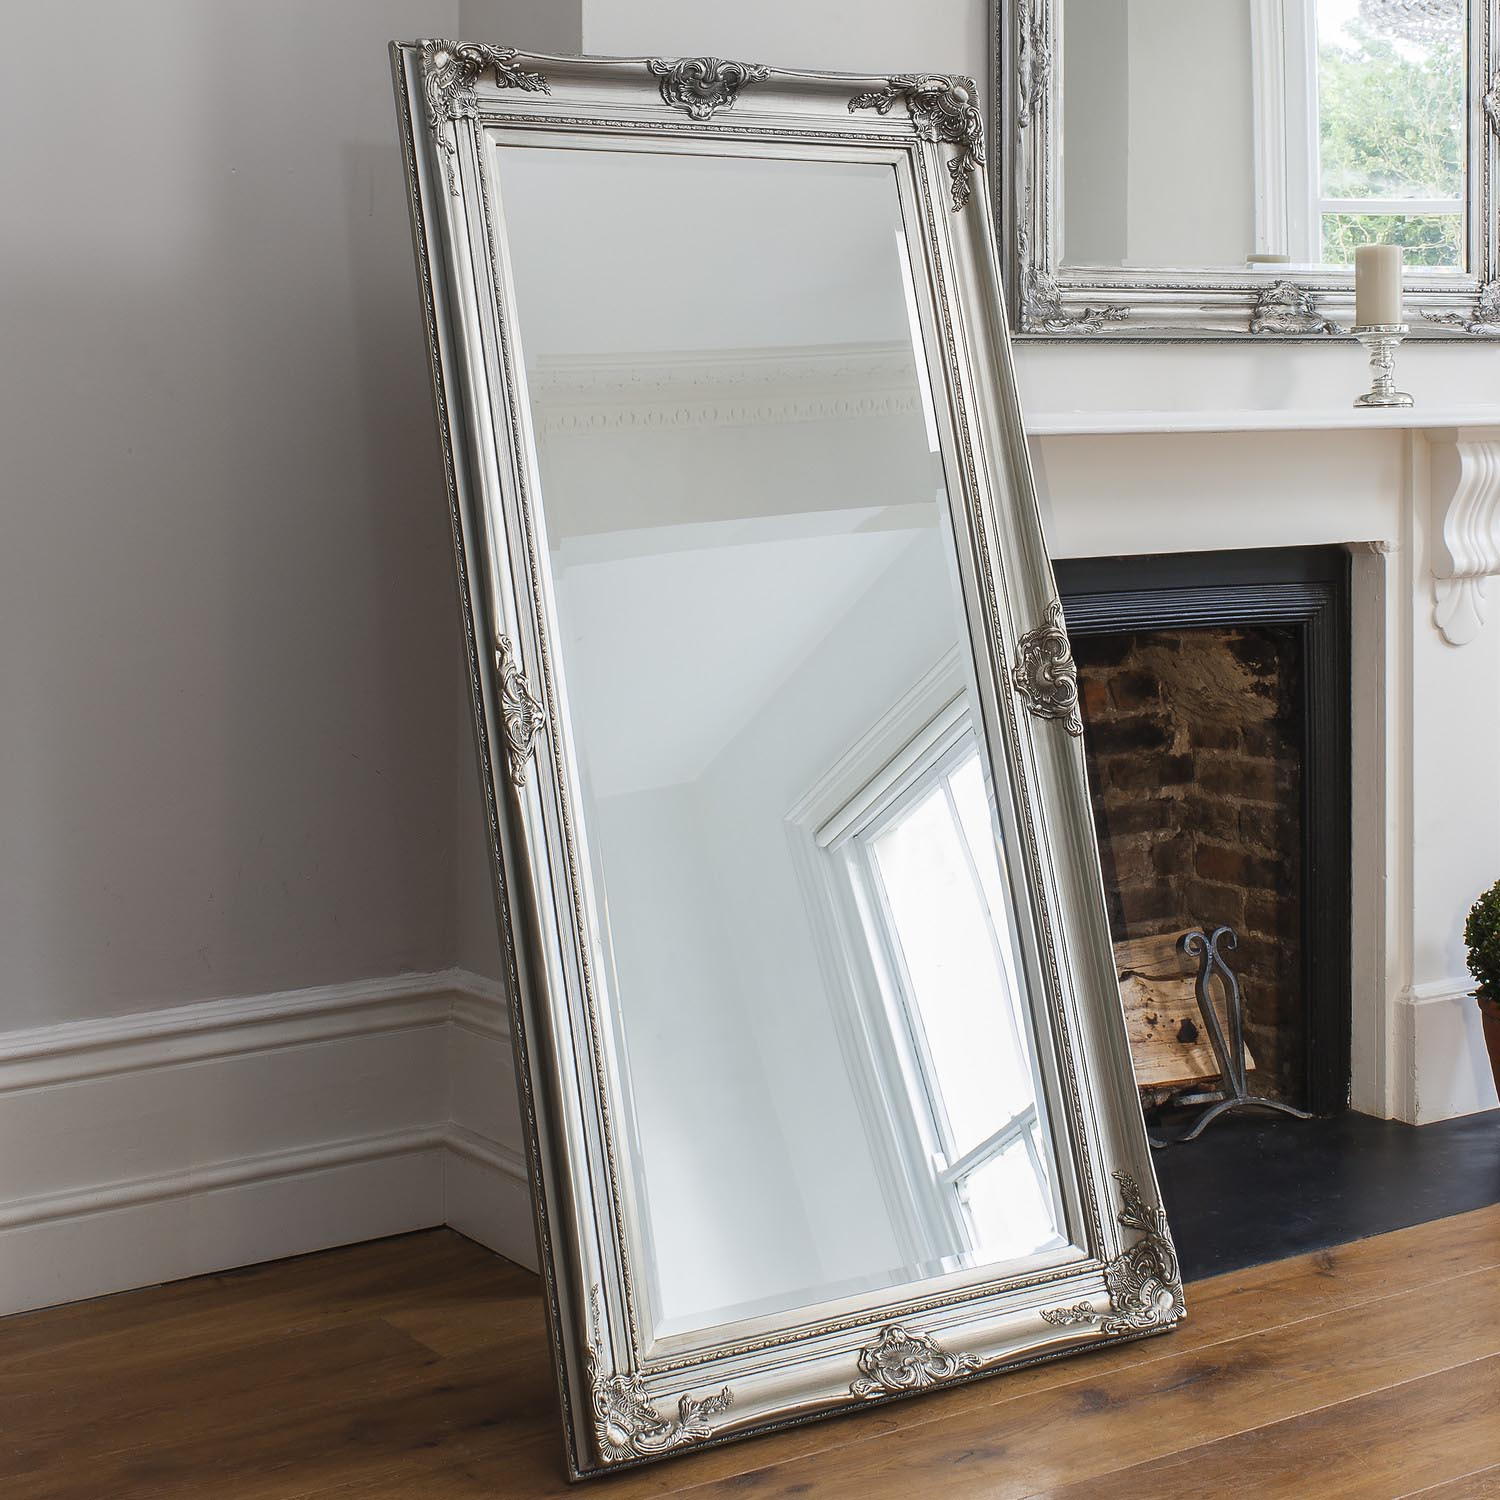 Large Floor Standing Mirrors Cheap